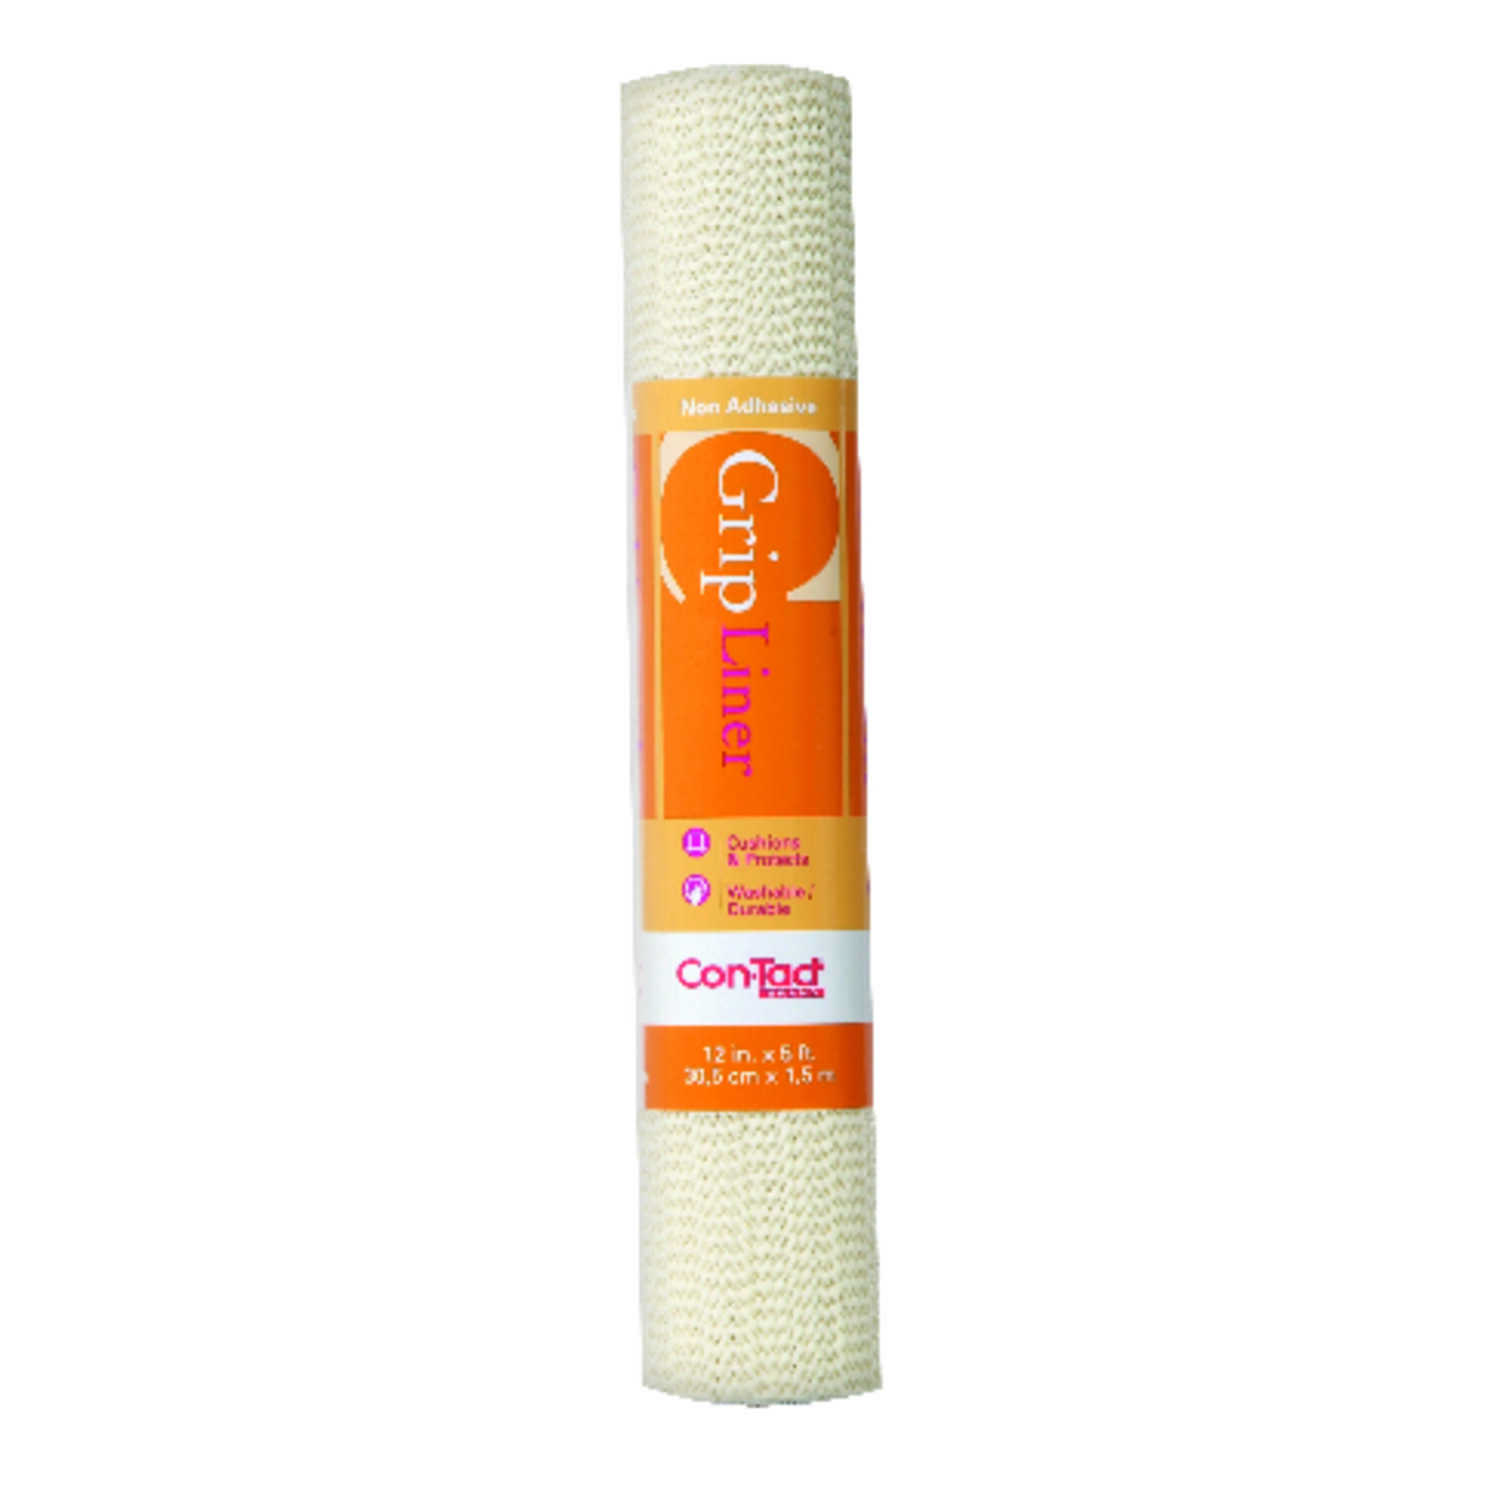 Con-Tact  Grip Liner  5 ft. L x 12 in. W Almond  Non-Adhesive  Liner